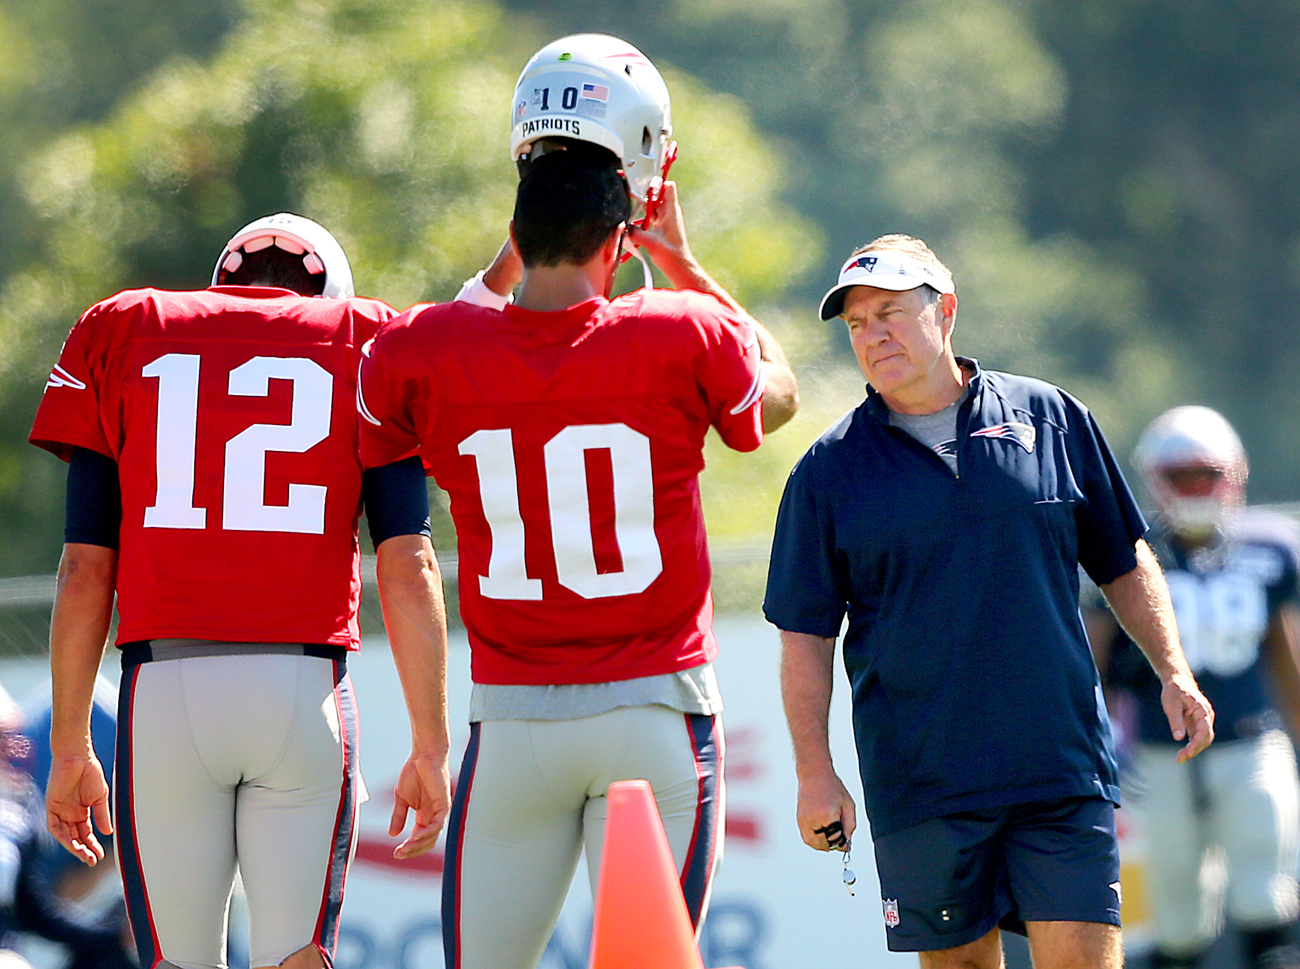 Bill Belichick opted to keep Jimmy Garoppolo rather than trade the backup quarterback, even with Tom Brady on the roster.